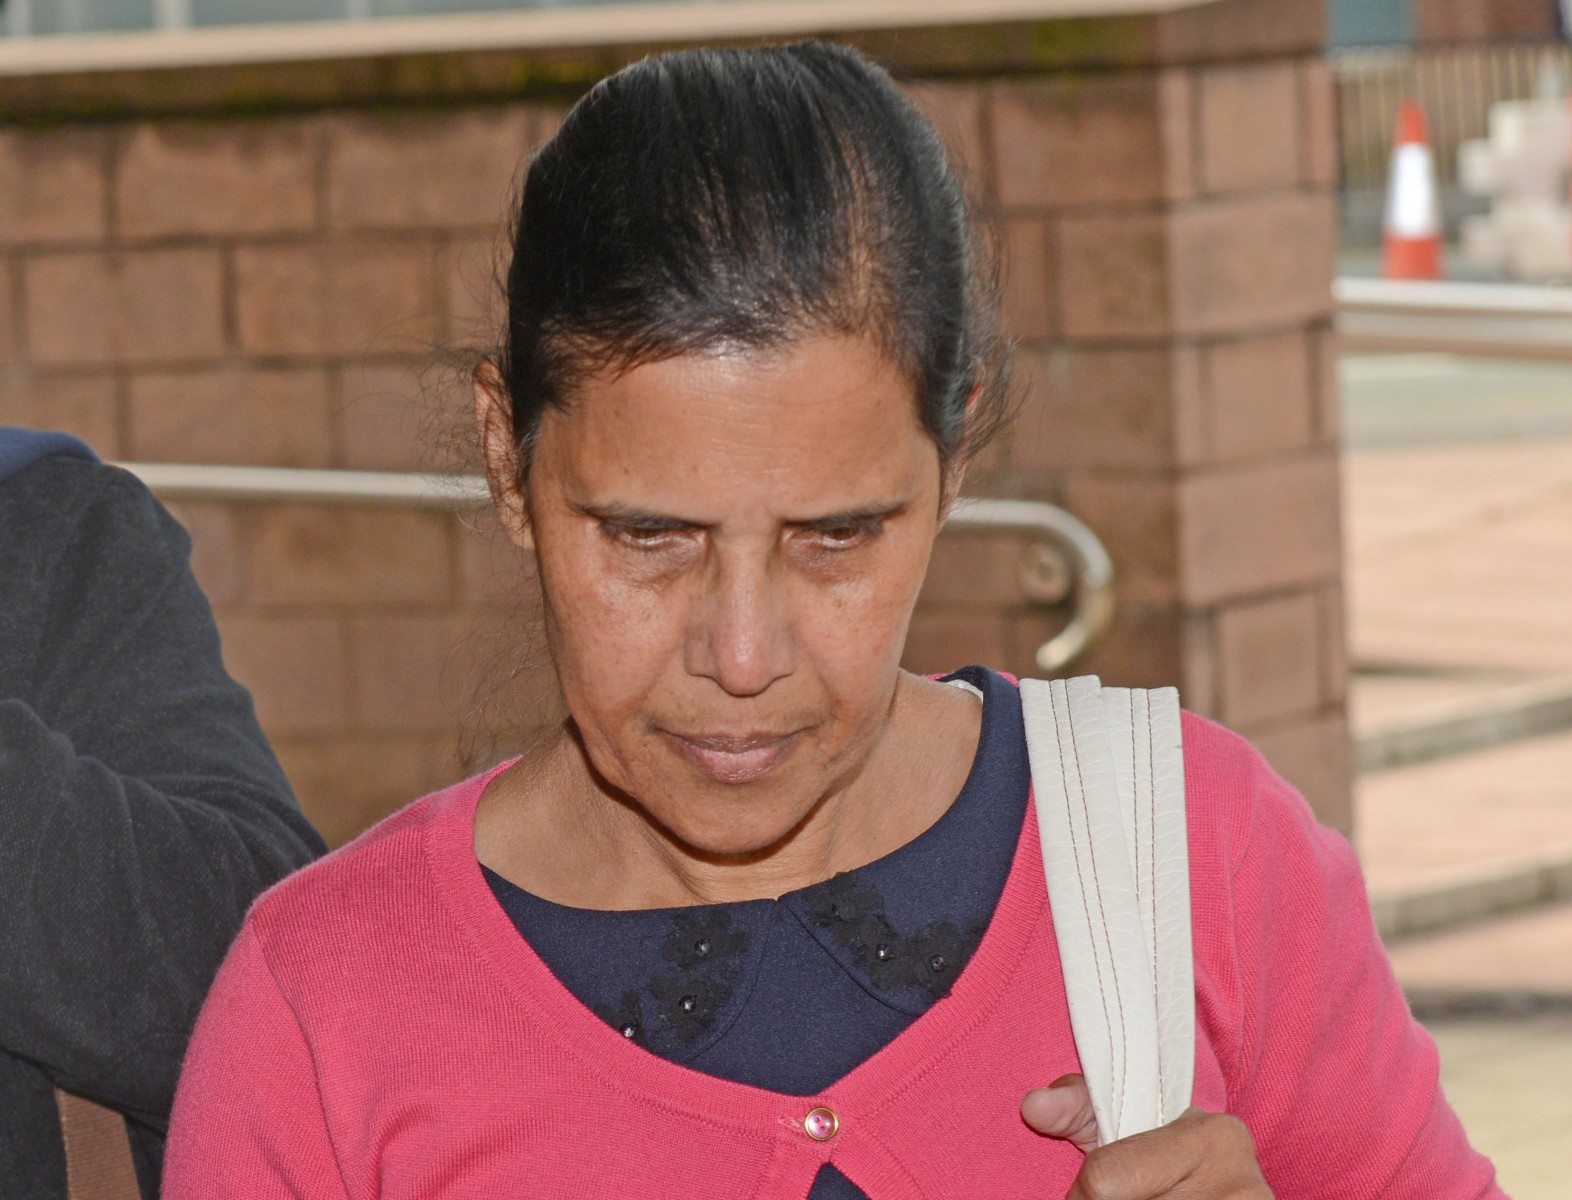 Care home boss jailed for cruelty has jail term slashed because she's 'claustrophobic'